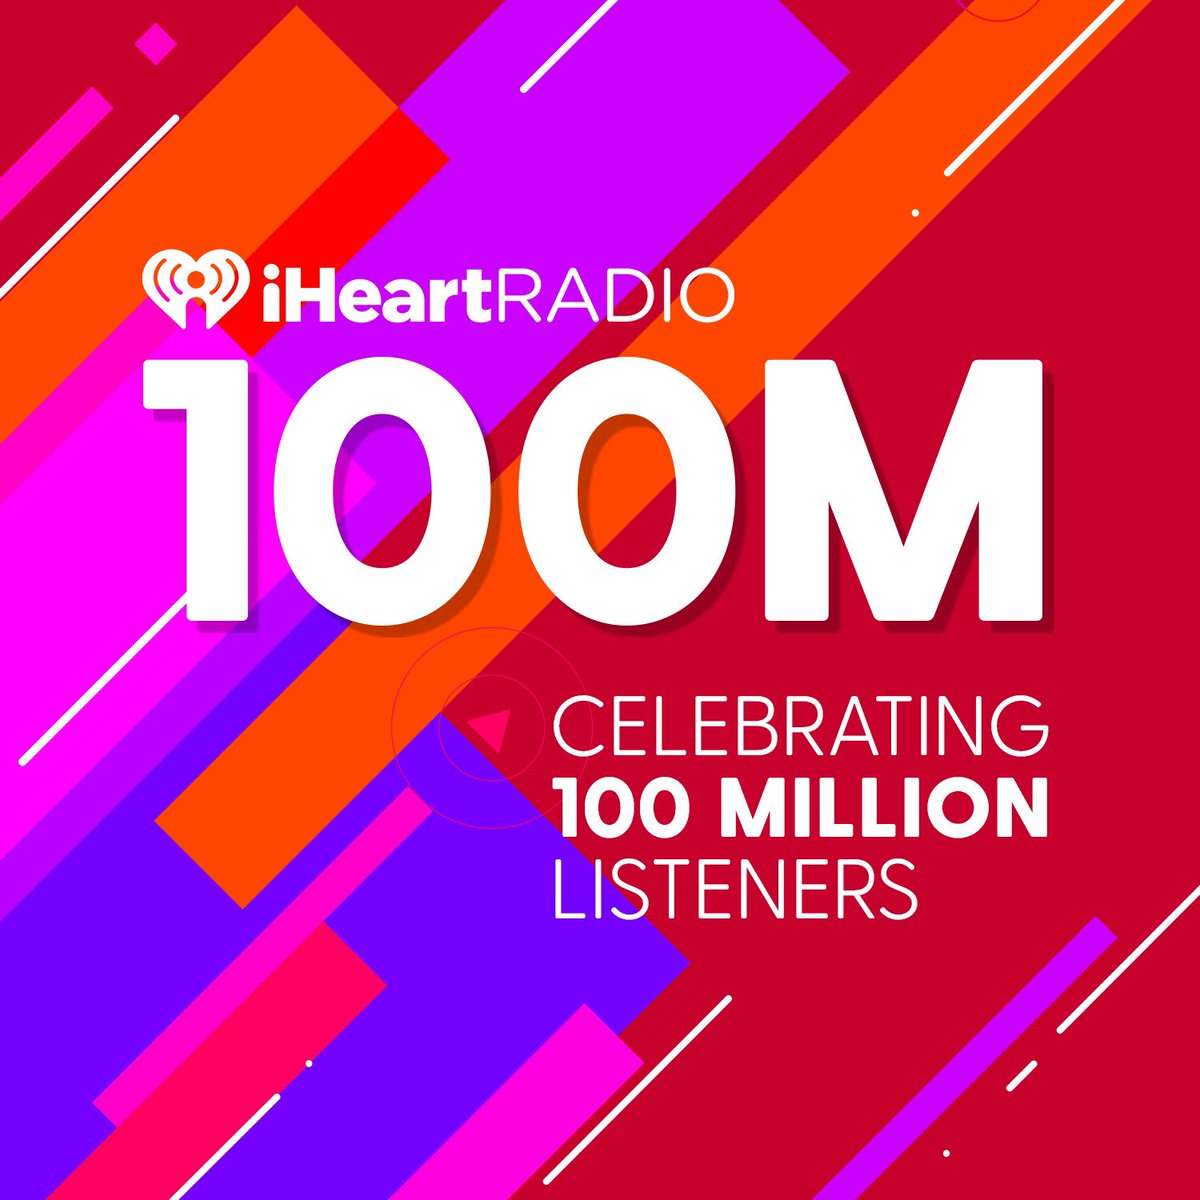 That is a huge accomplishment y'all! So happy for @iHeartRadio! #iHear...